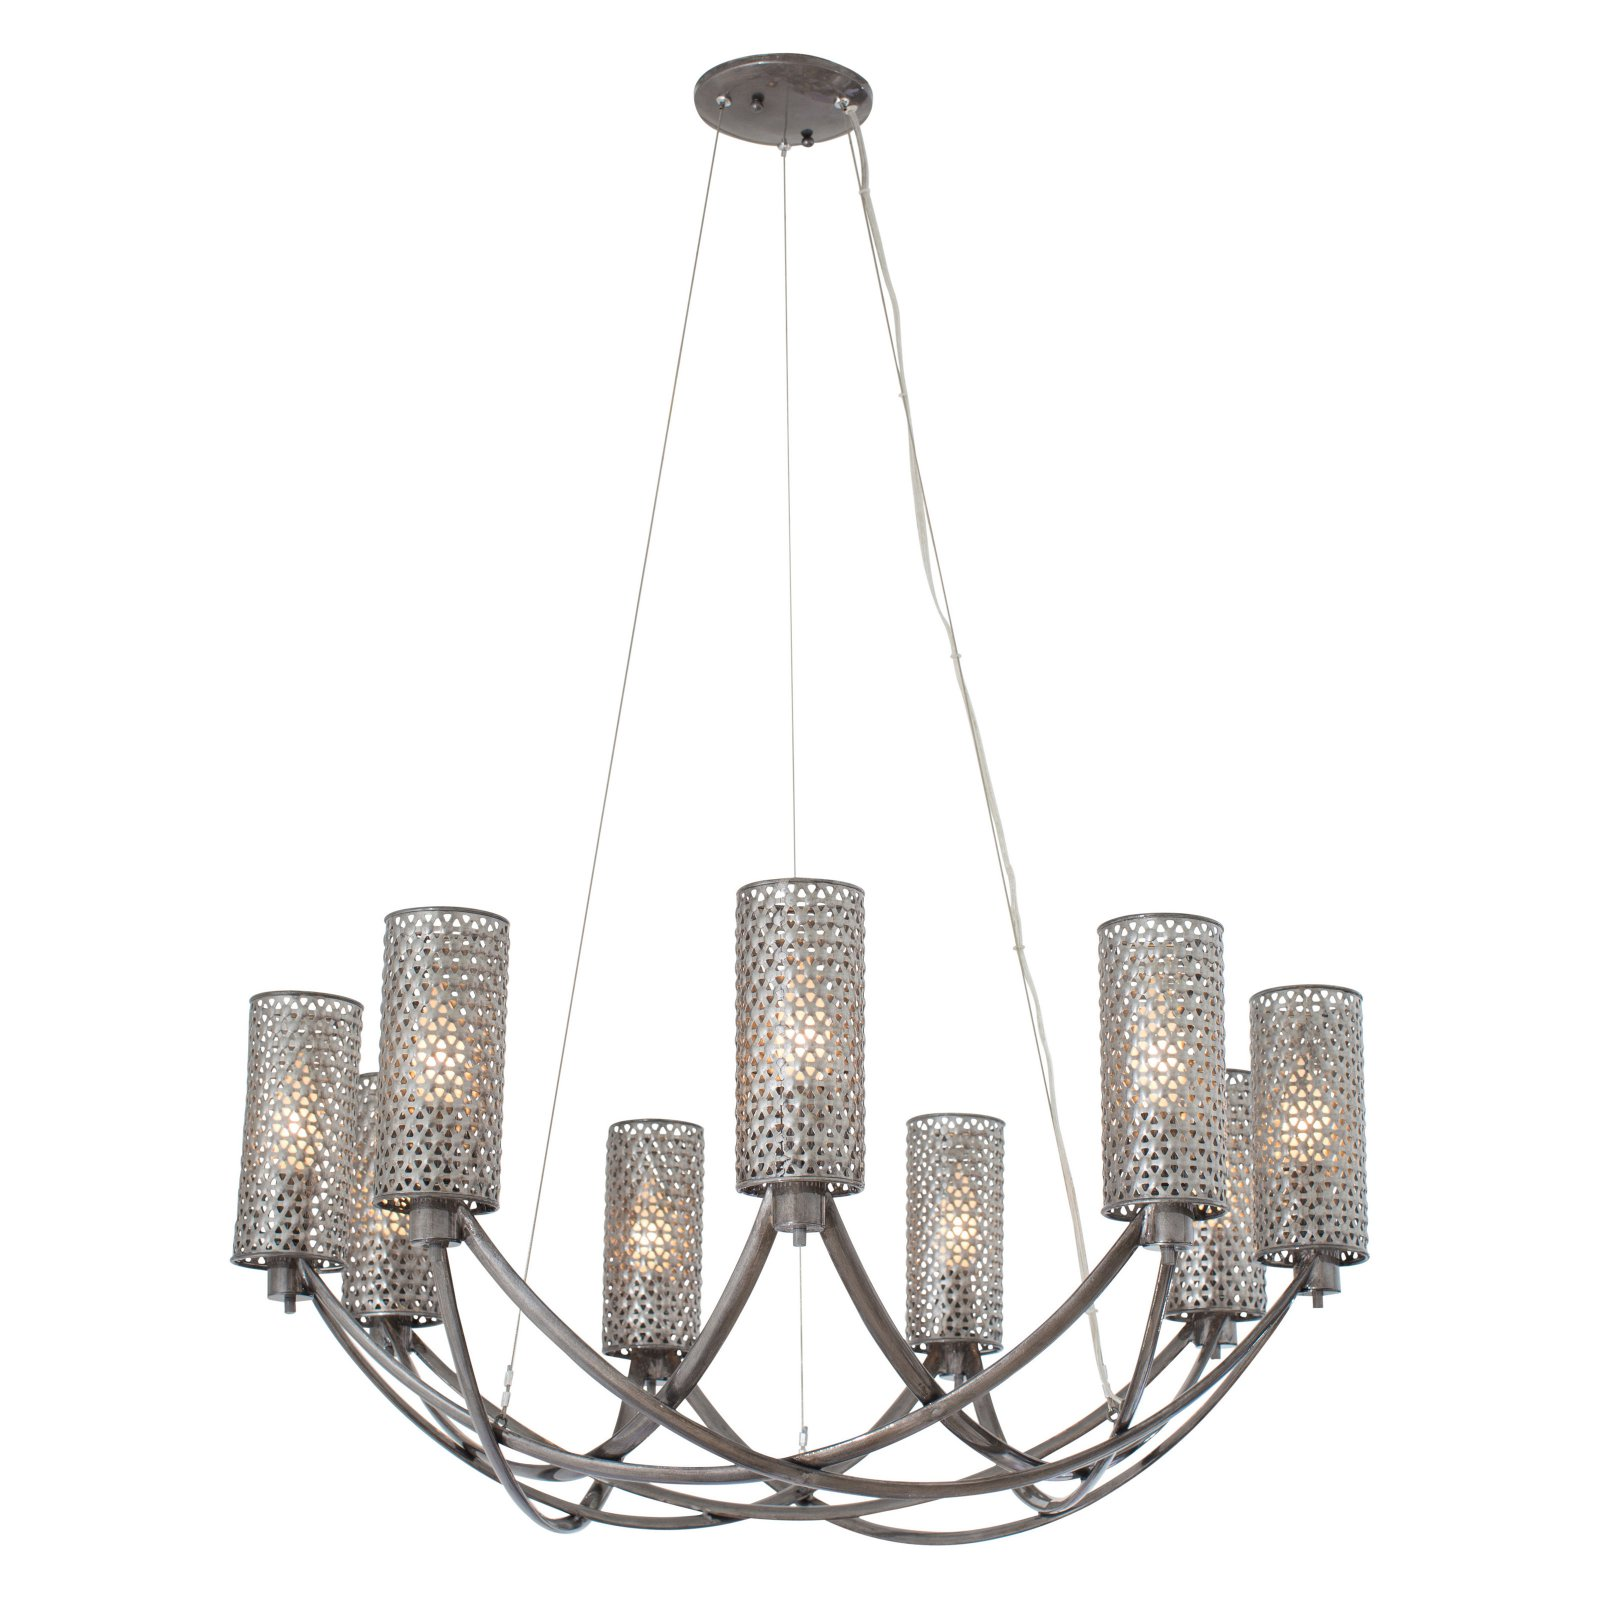 Varaluz Casablanca 244C09SL 9-Light Chandelier